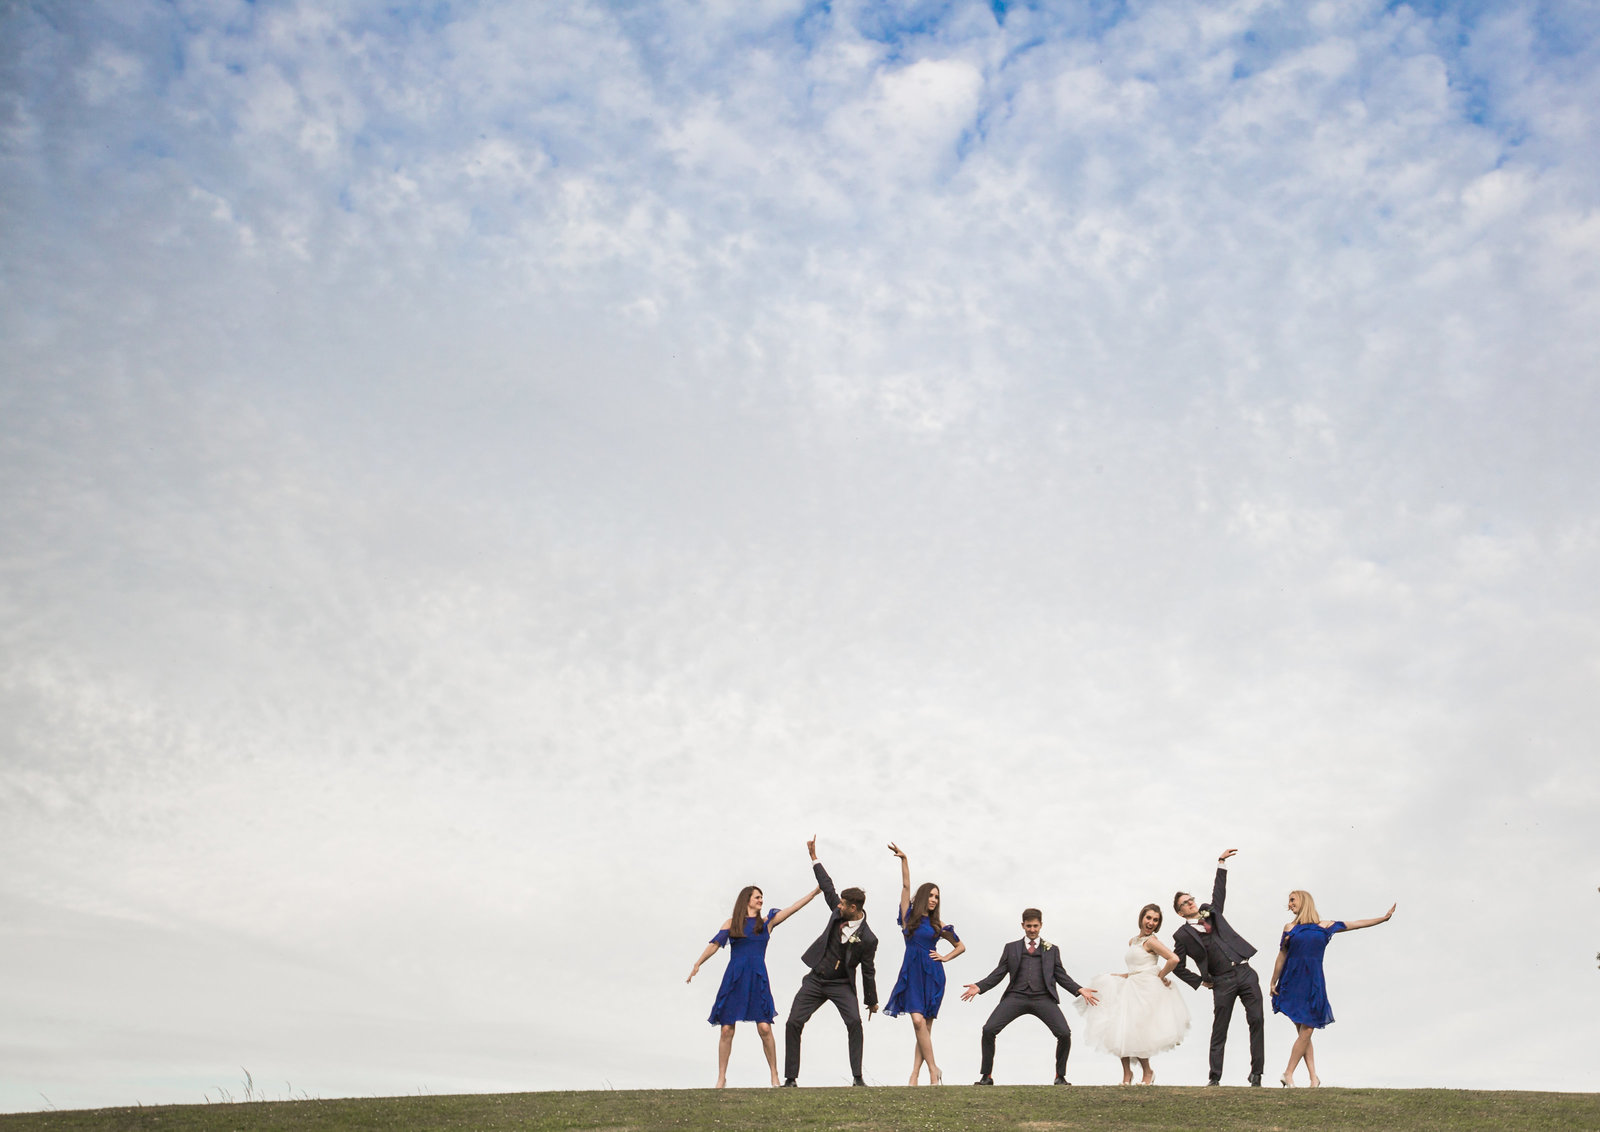 The wedding party stand and pose on a hill against a blue Norfolk sky.